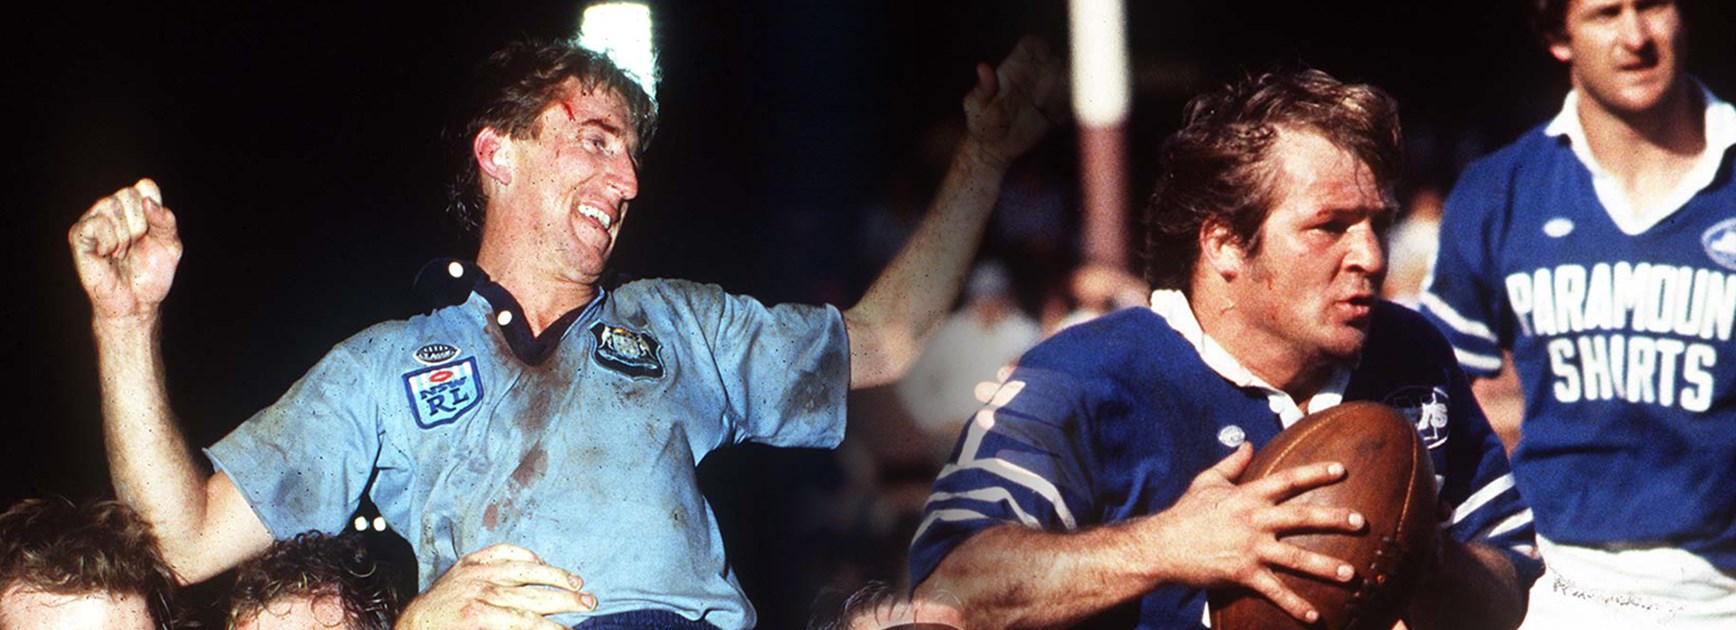 Mortimer and Raudonikis inducted to the NSWRL The Star Hall of Fame